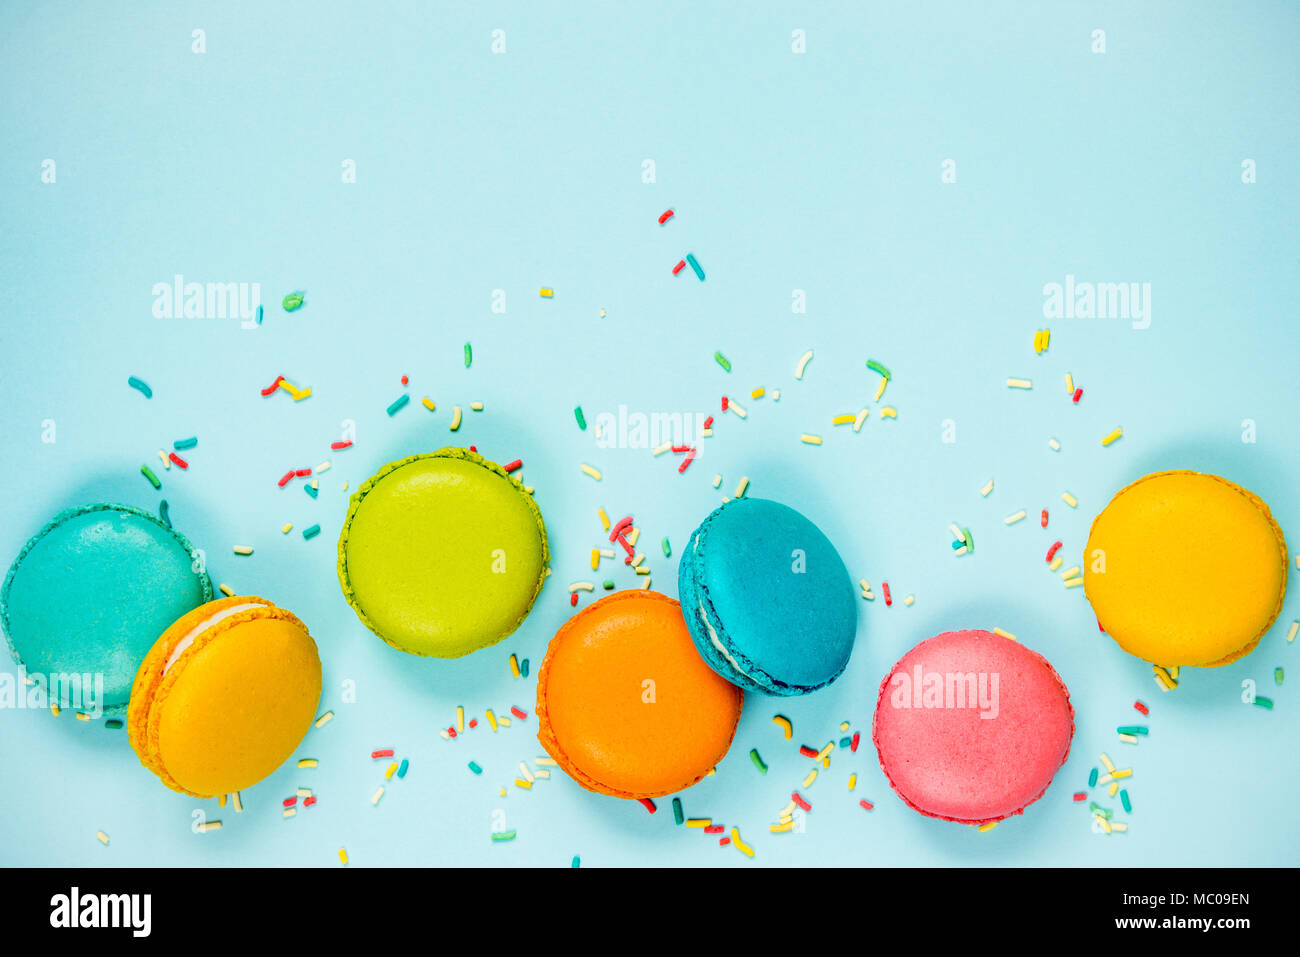 Top view of colorful macaroons and sugar sprinkles arranged over blue background. - Stock Image